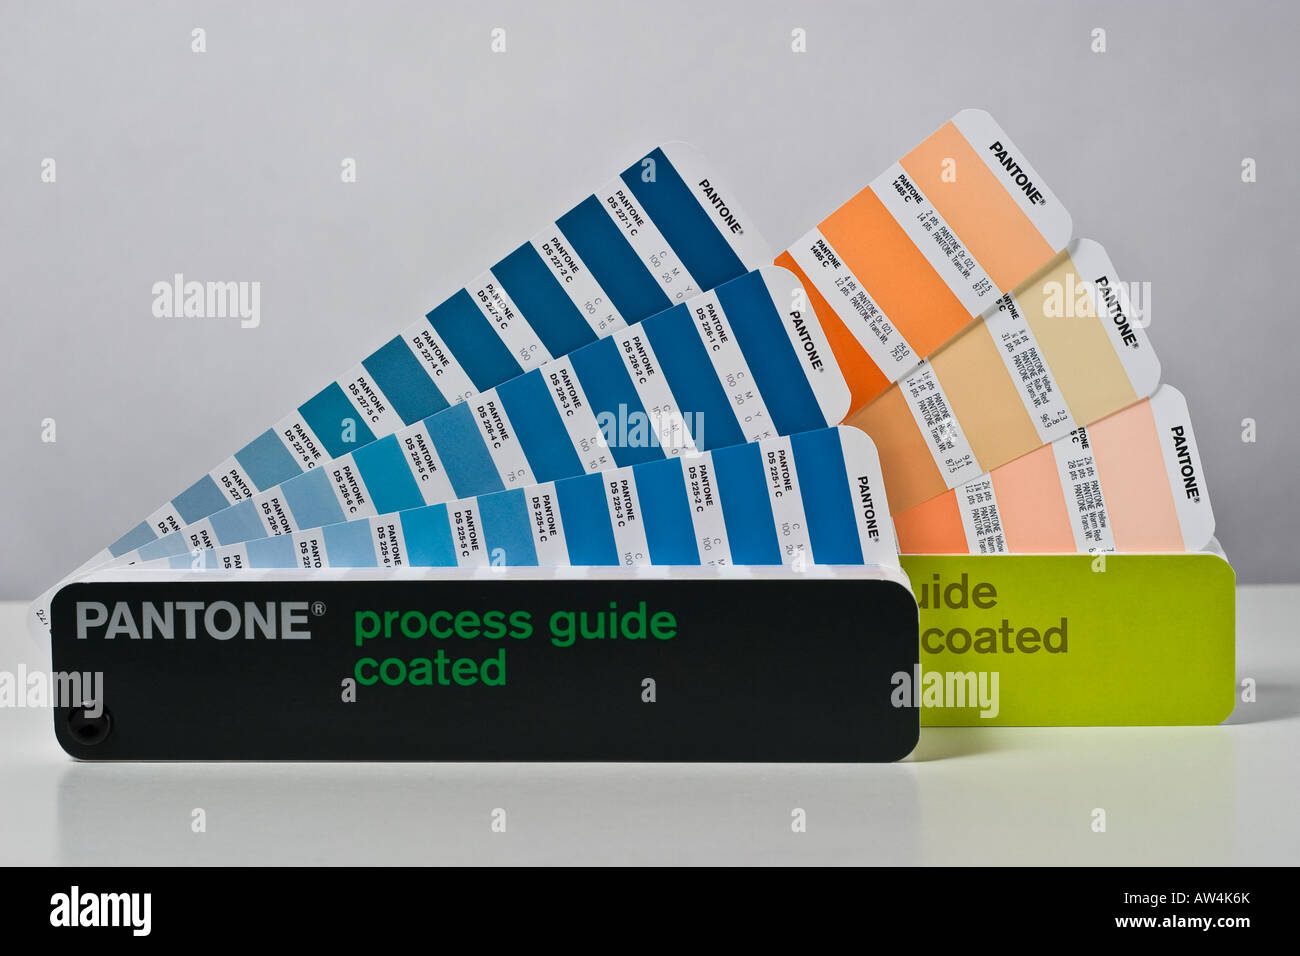 Pantone Color Samples Isolated On Stock Photos & Pantone Color ...